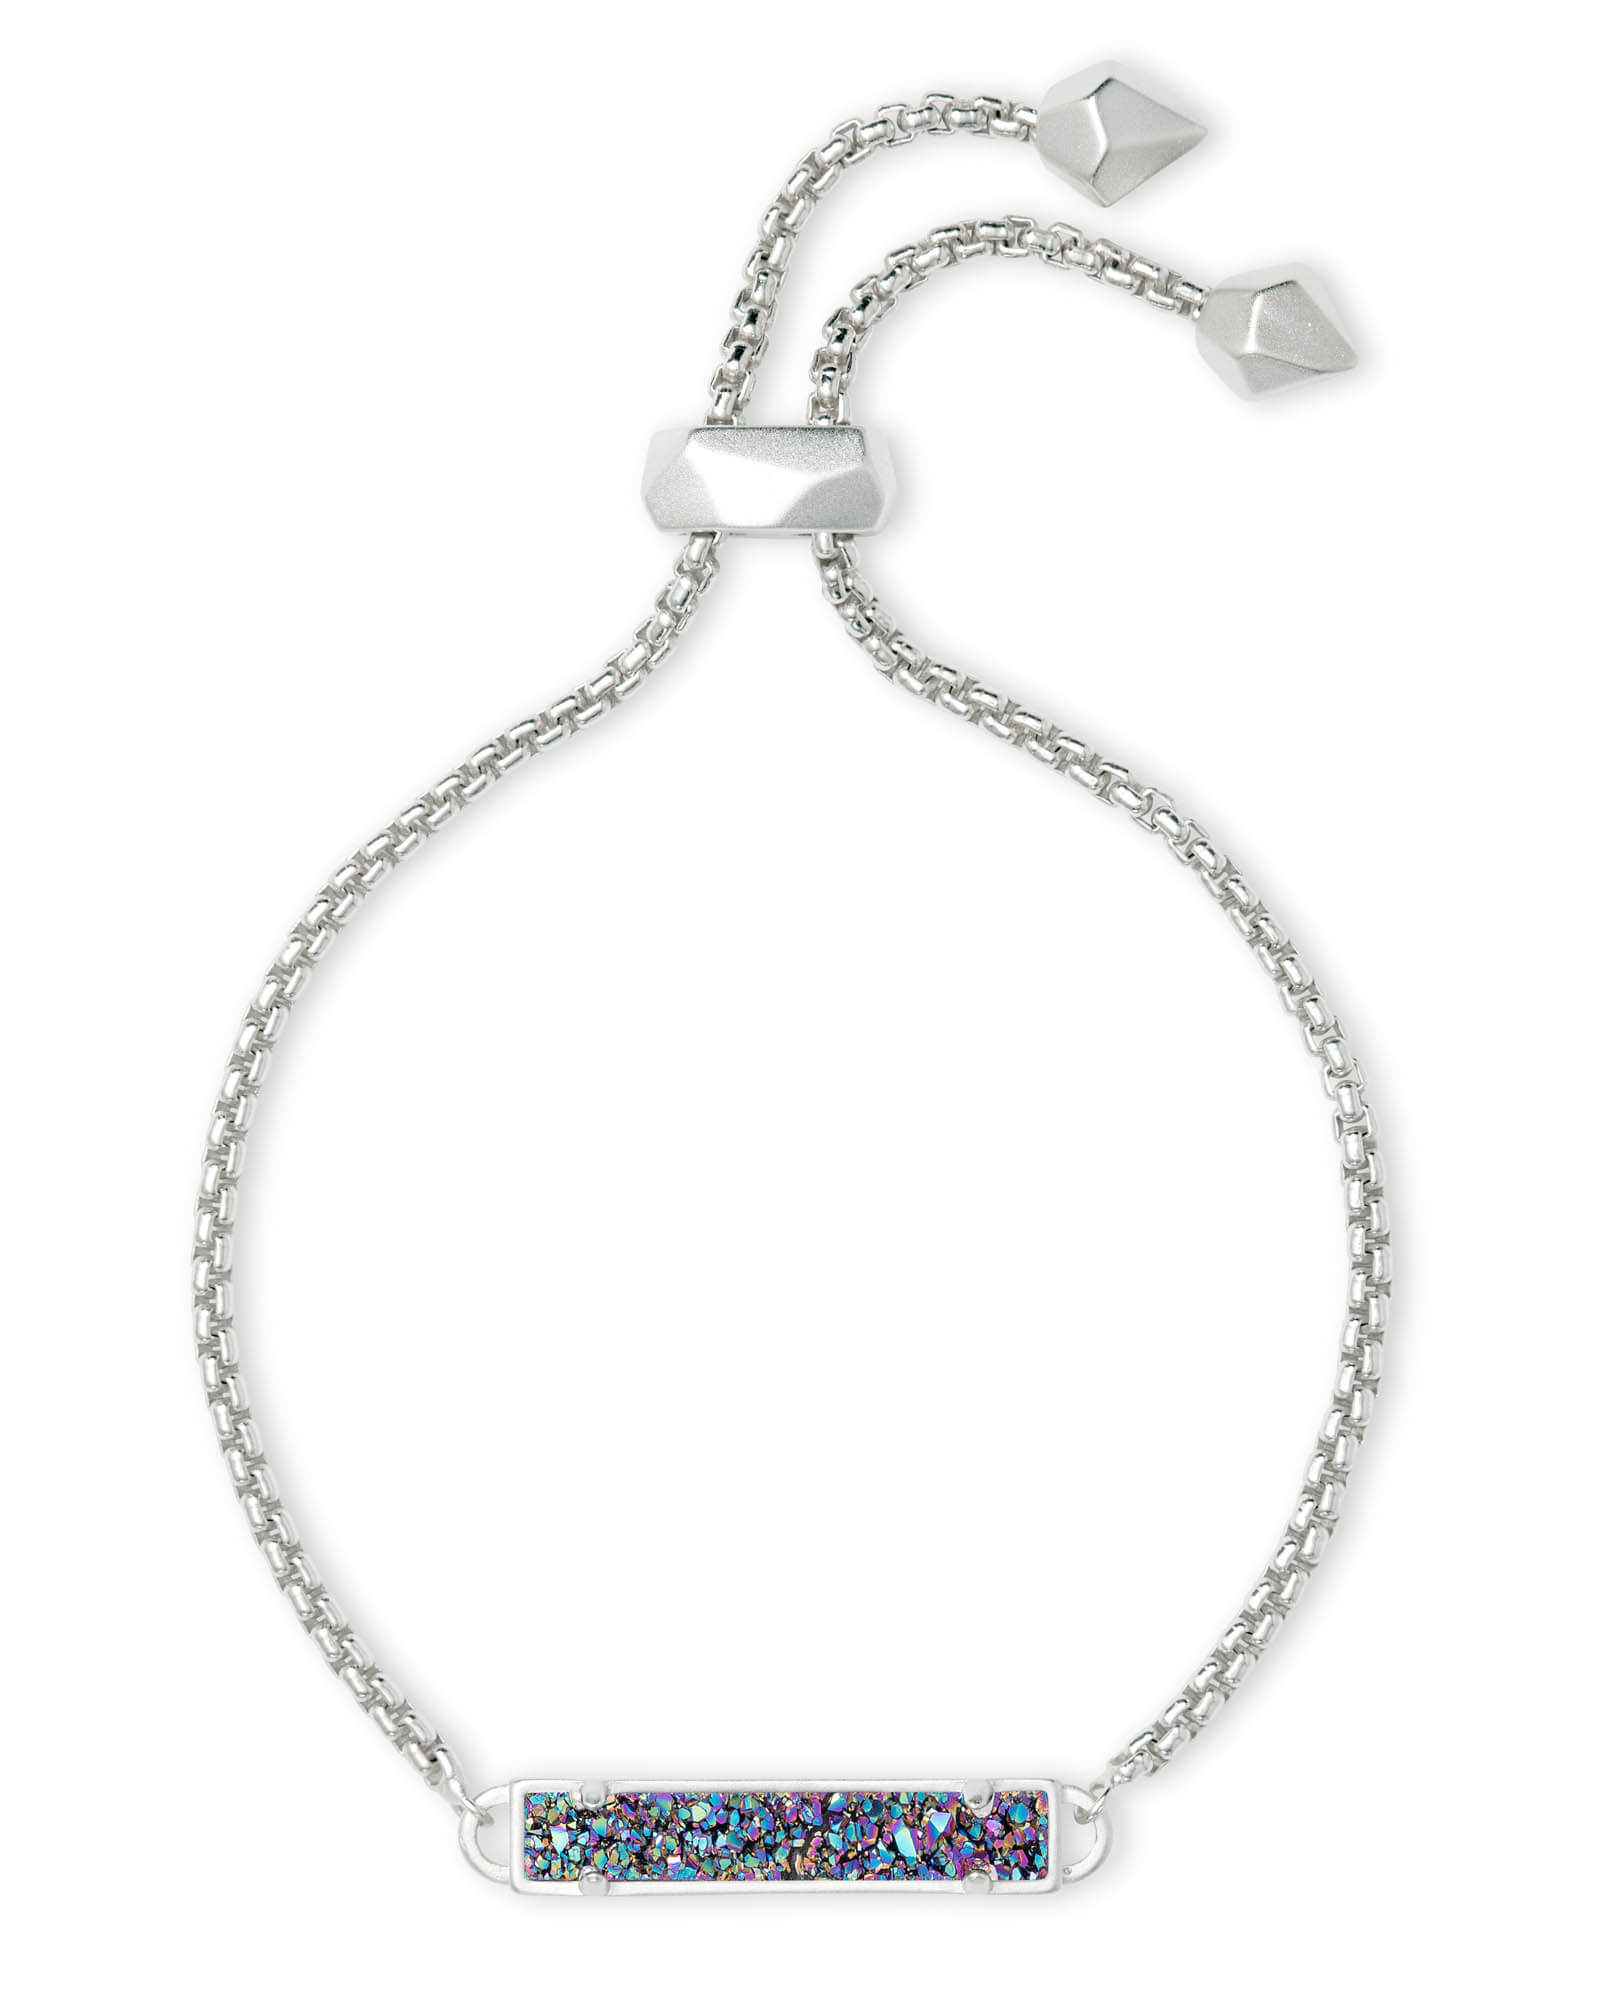 Stan Silver Adjustable Chain Bracelet in Multicolor Drusy